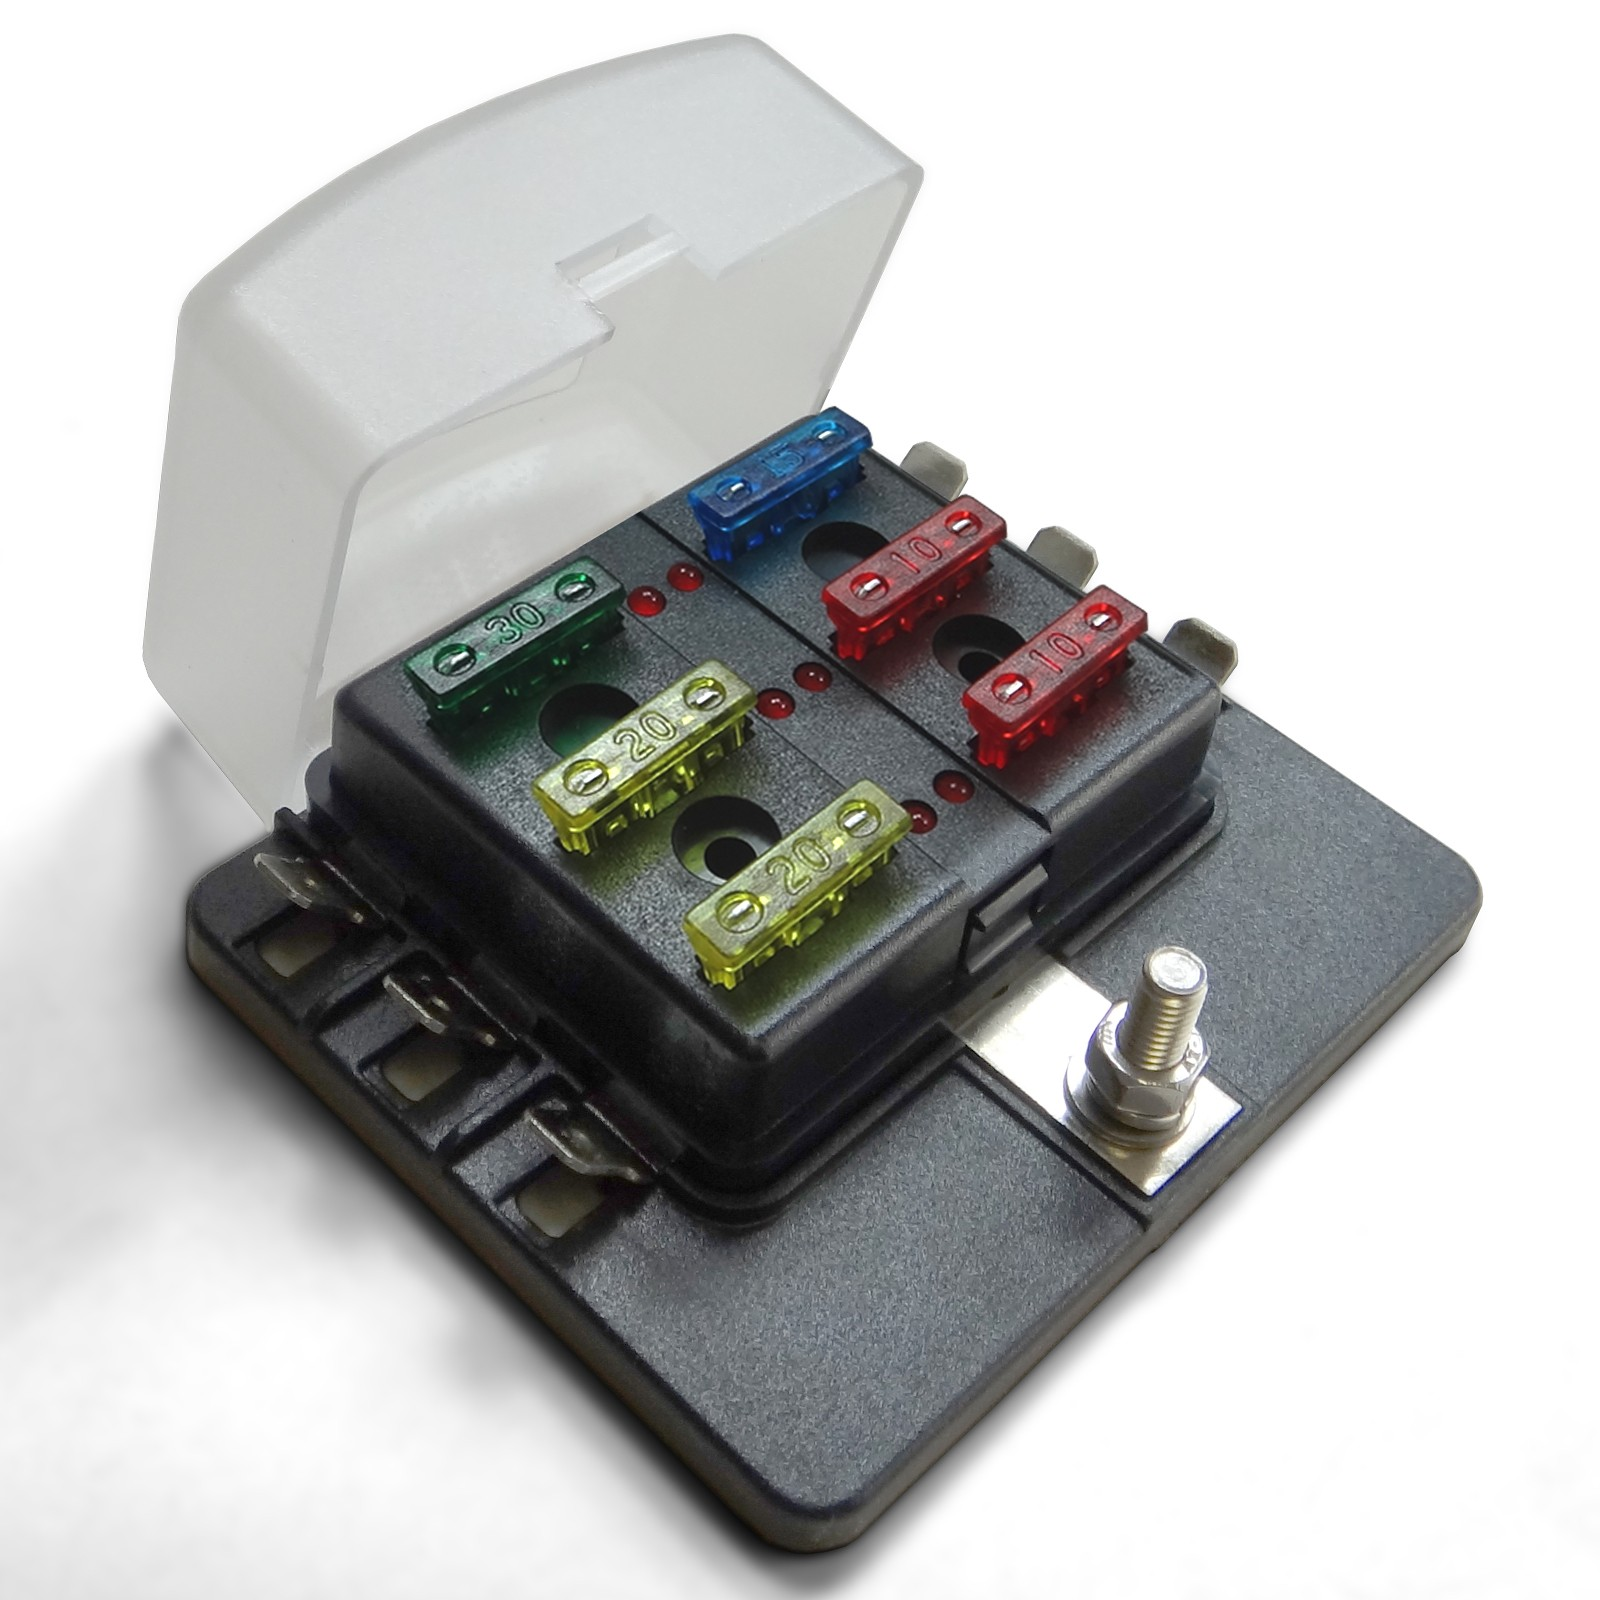 6 Way 12v Blade Fuse Box Distribution Block With Led Indicators Hot Rod Universal Circuit Terminal Clear Cover Fuses